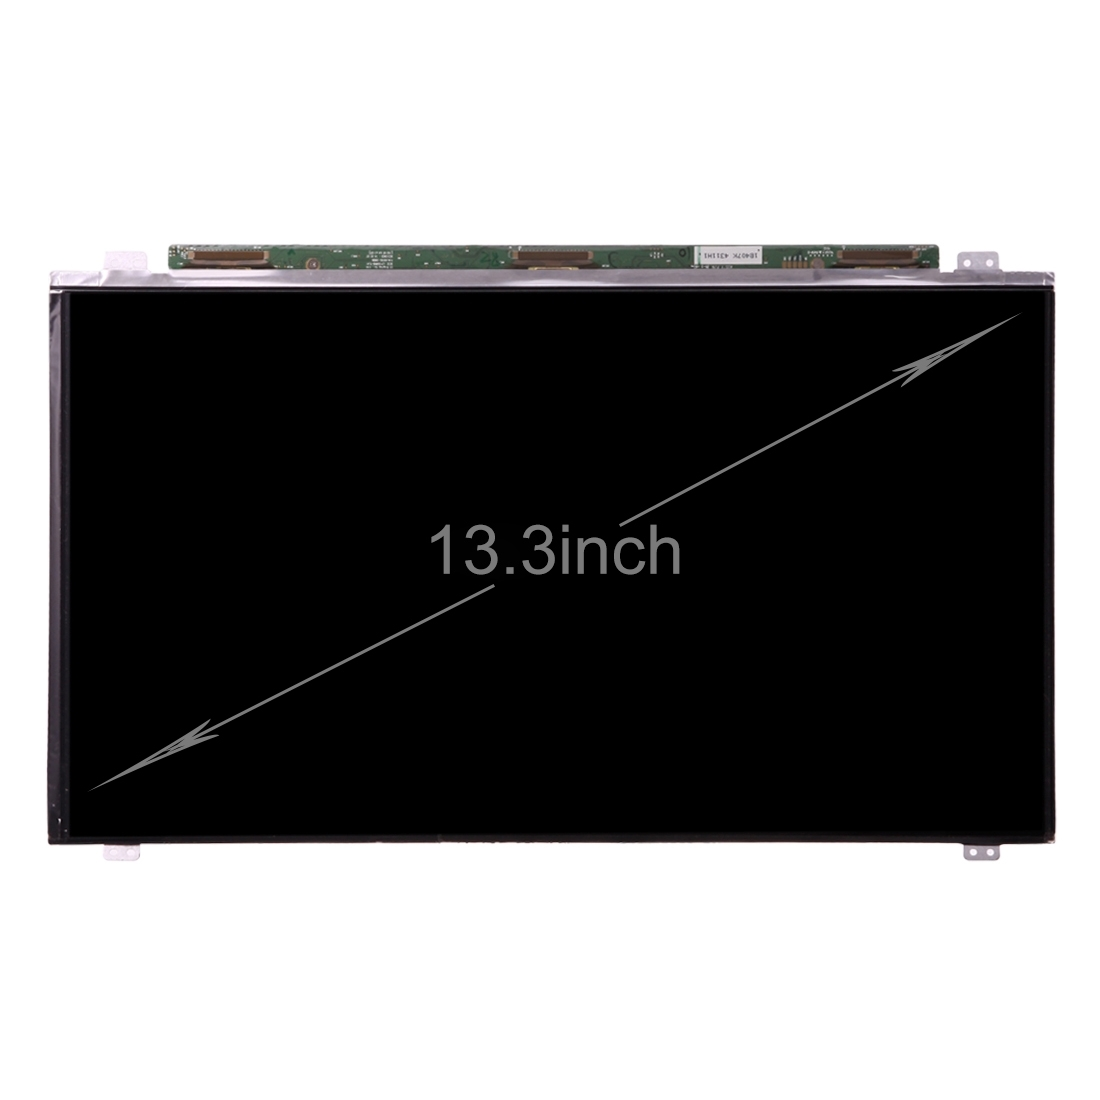 N133HCE-EAA 13.3 inch 30 Pin 16: 9 High Resolution 1920 x 1080 Laptop Screens TFT IPS Panels